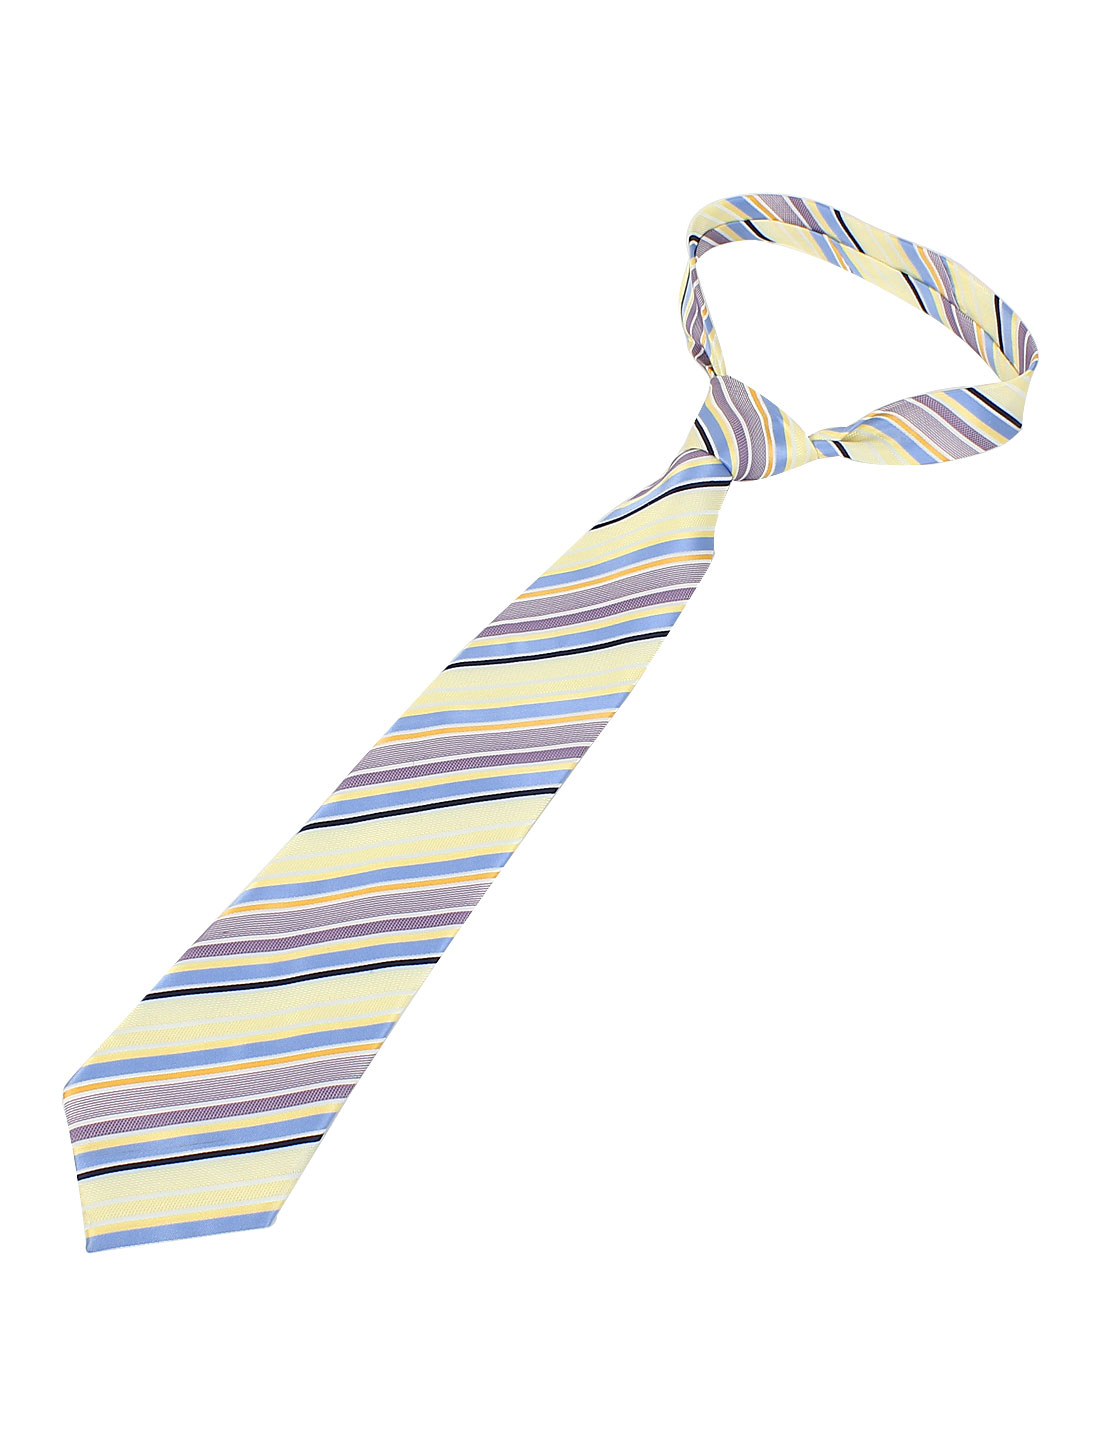 Bussiness Stripe Pattern Multicolor Polyester Textured Neckwear Necktie for Men